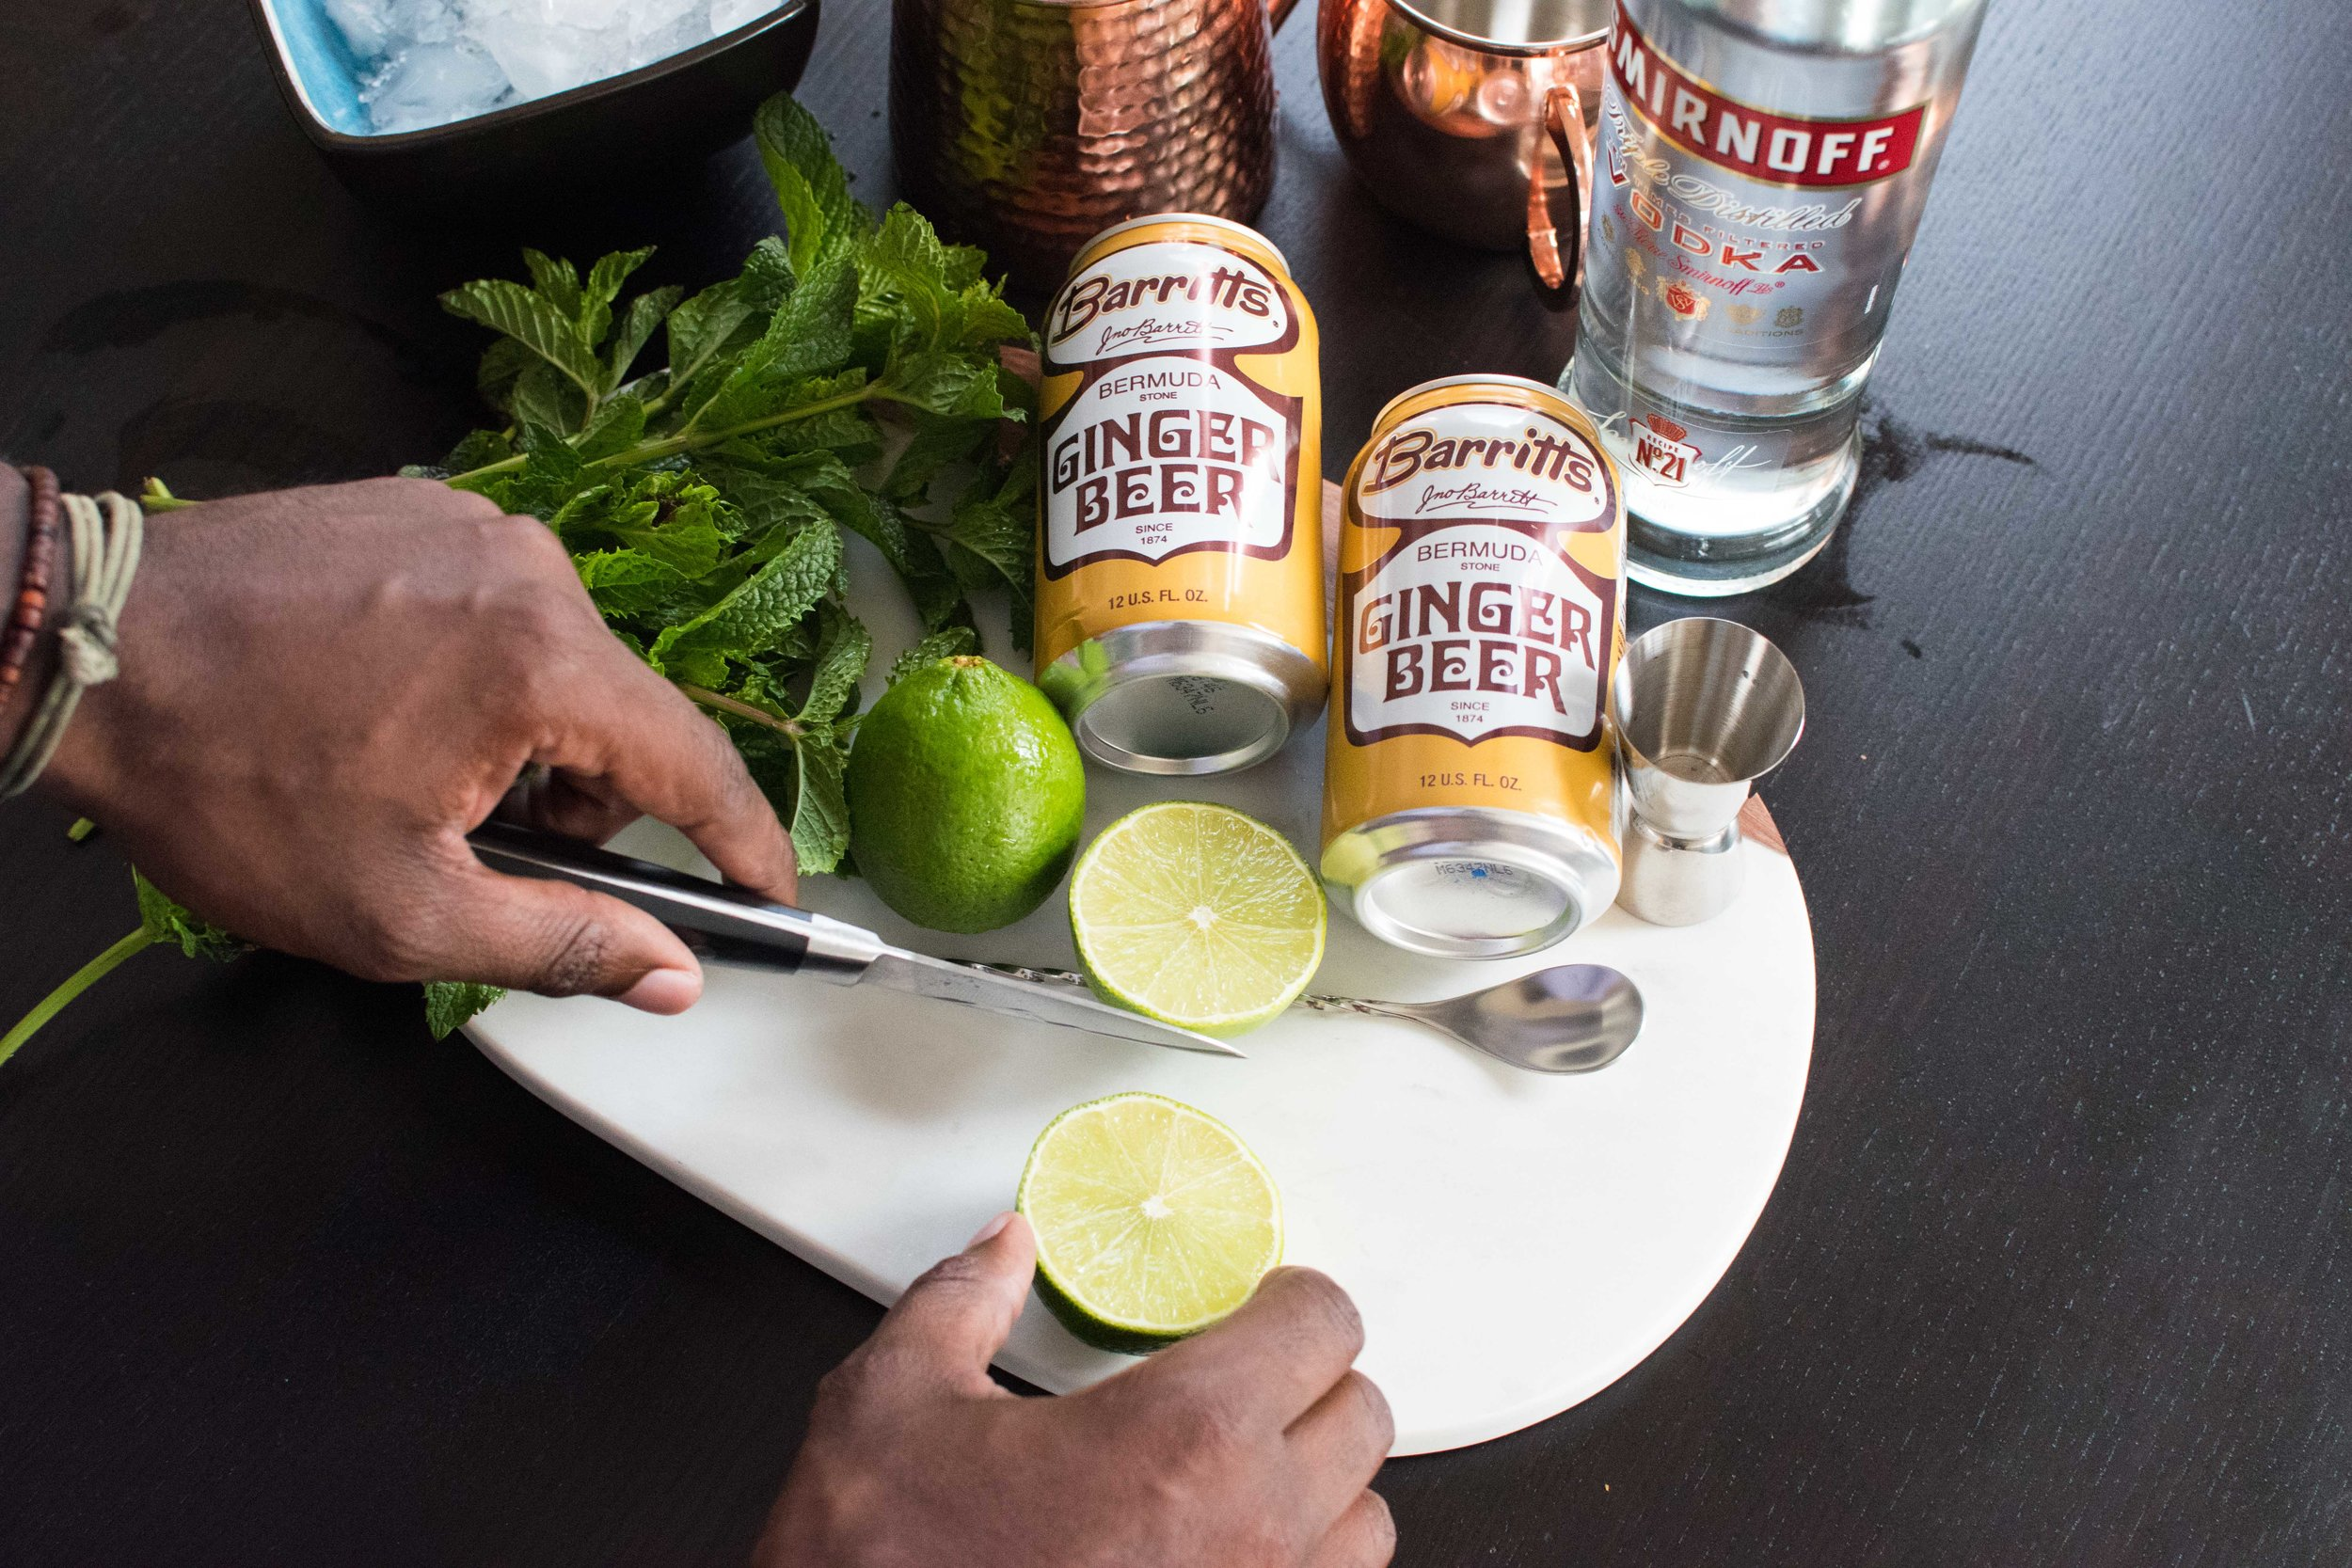 Moscow Mule Recipe Barritts Ginger Beer-14.jpg